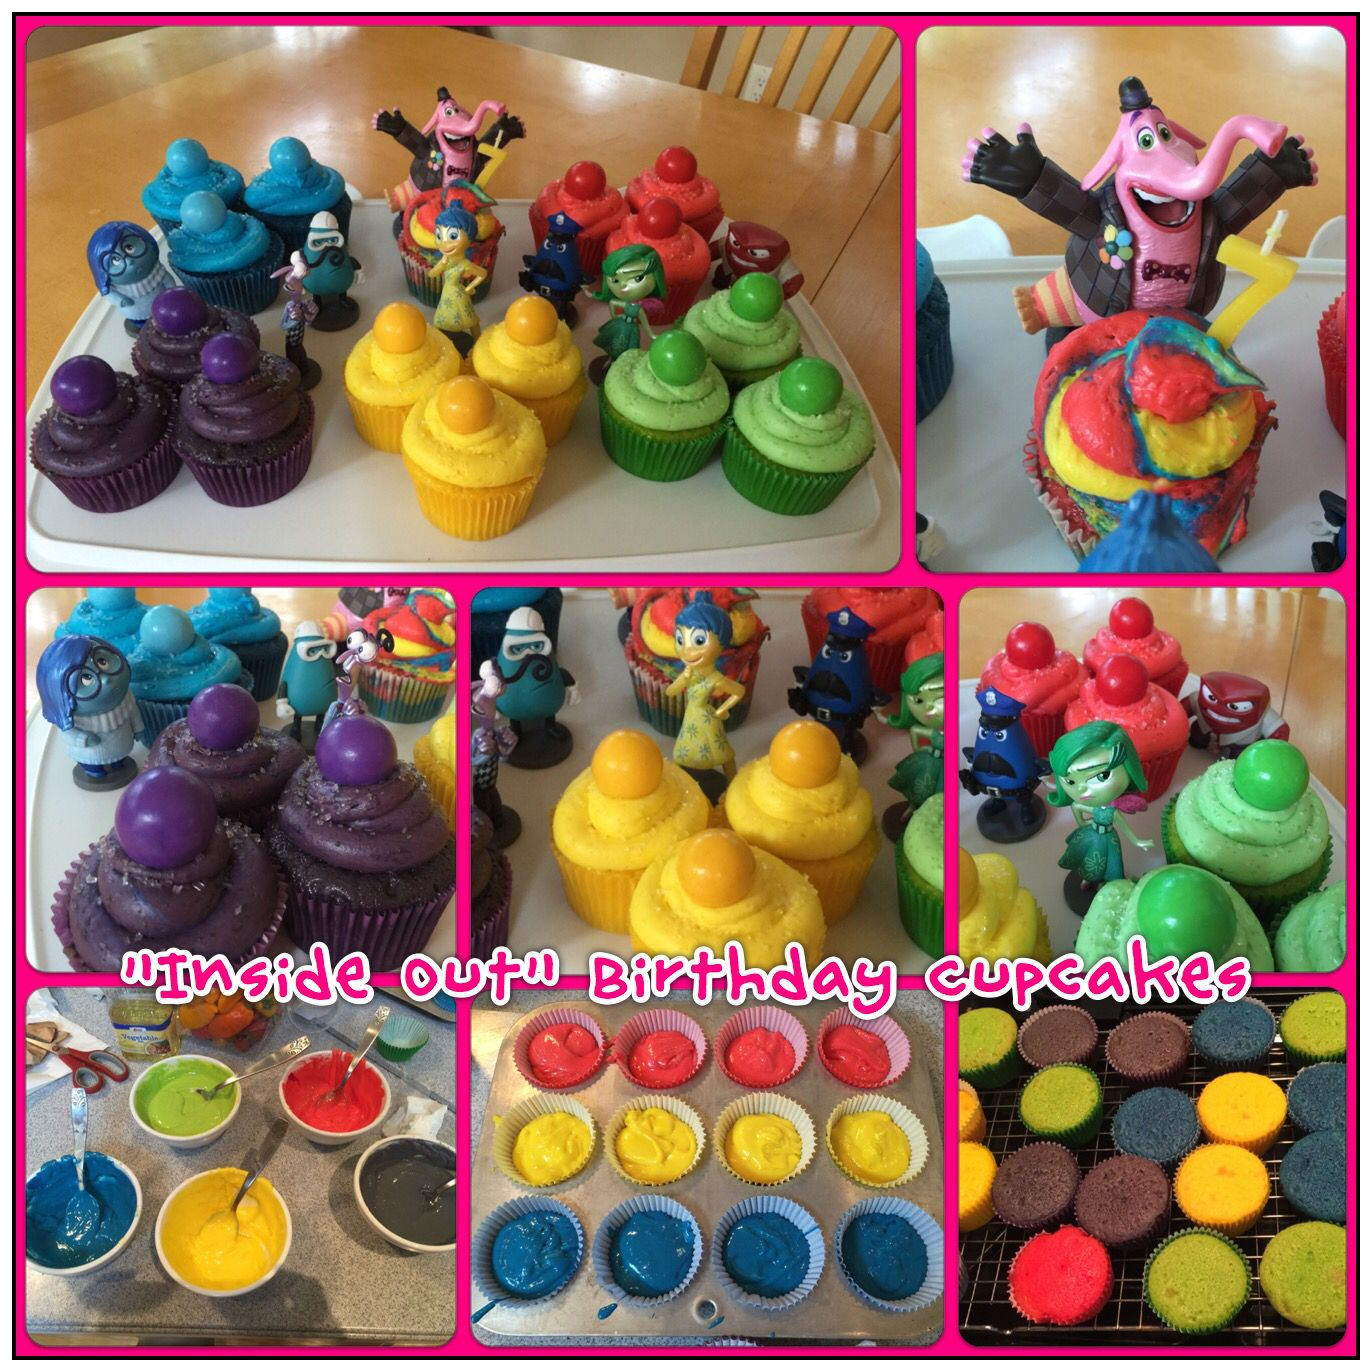 Inside Out birthday cupcakes Figurines from the Disney Store Gum